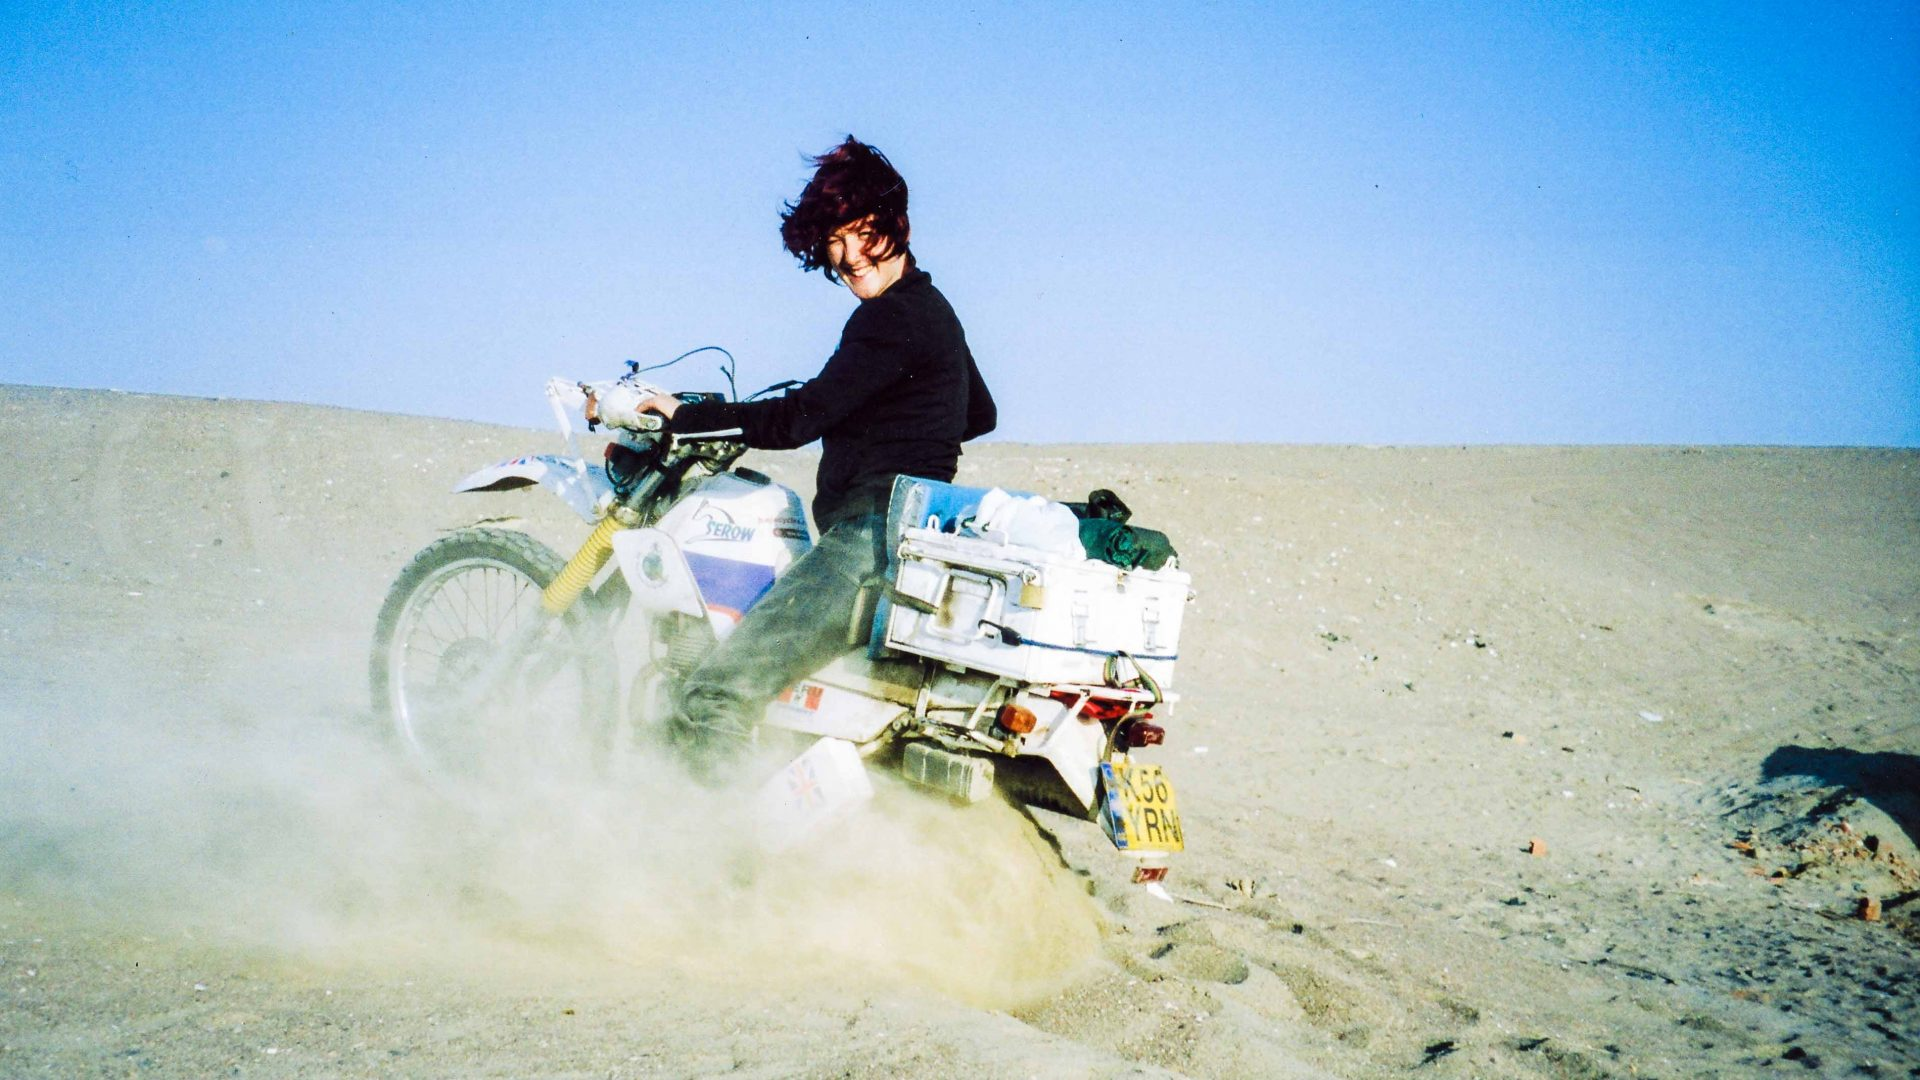 Riding solo: One woman's motorcycle adventures in Iran and beyond